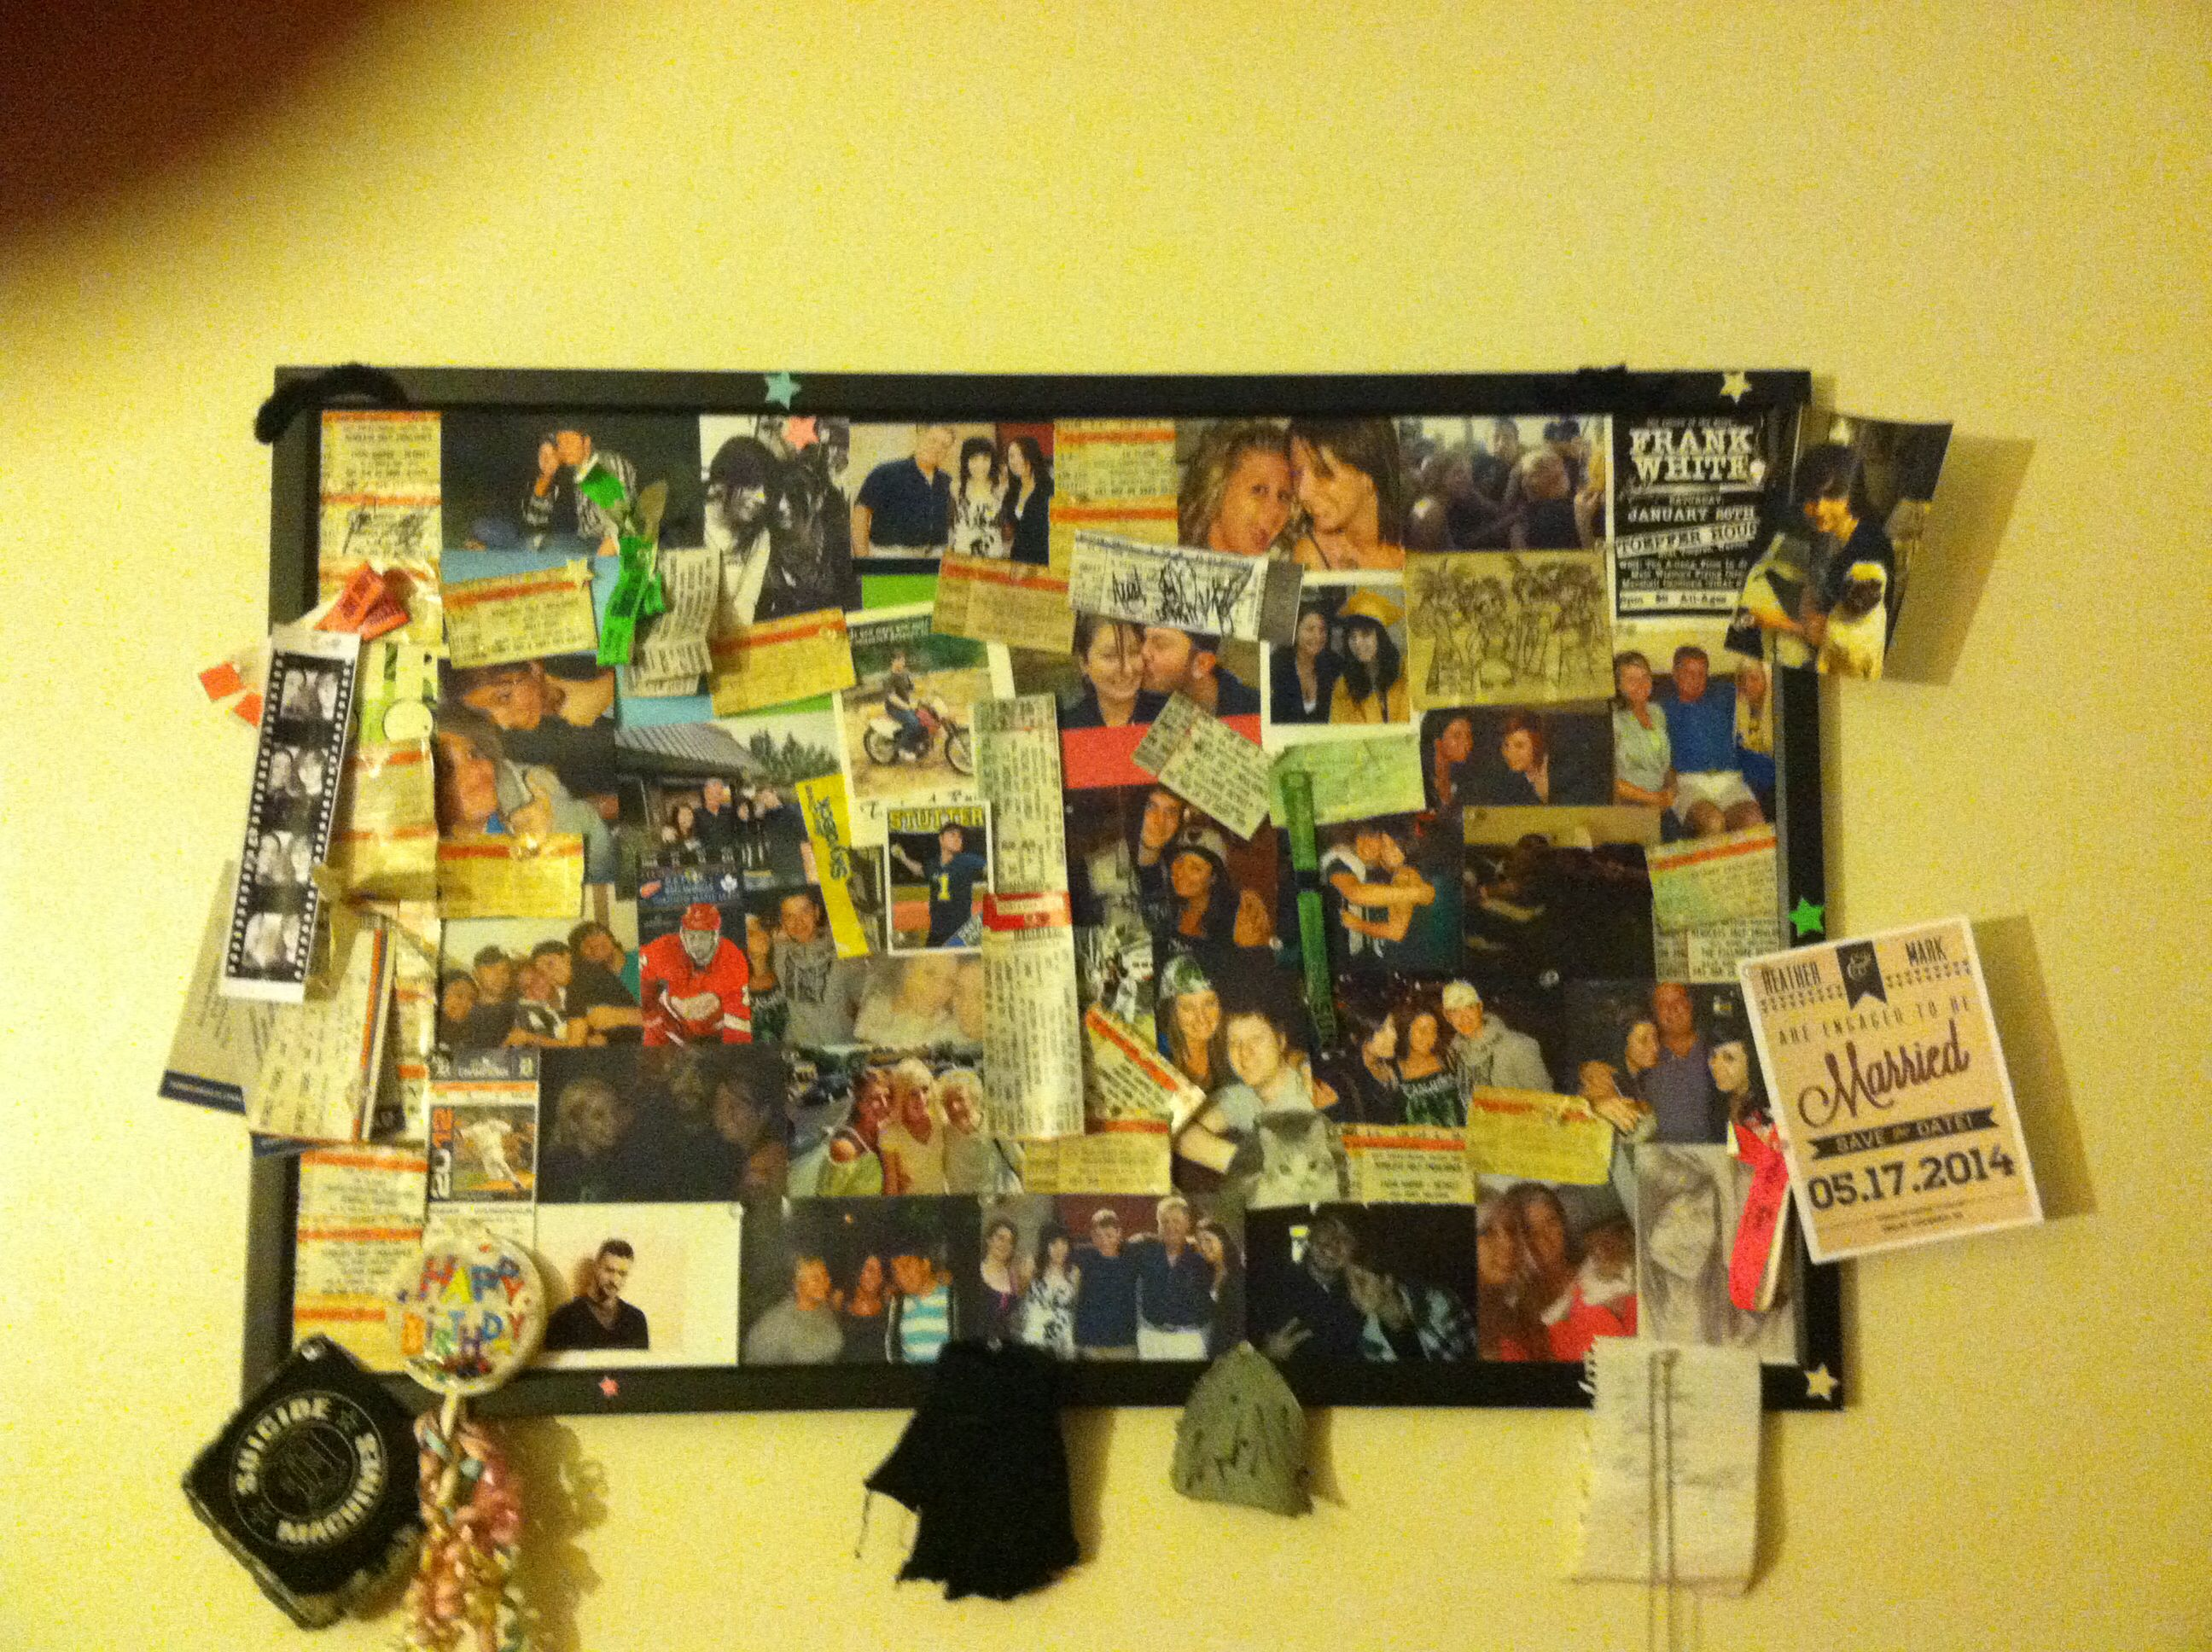 A collage of my favorite memories on a cork board